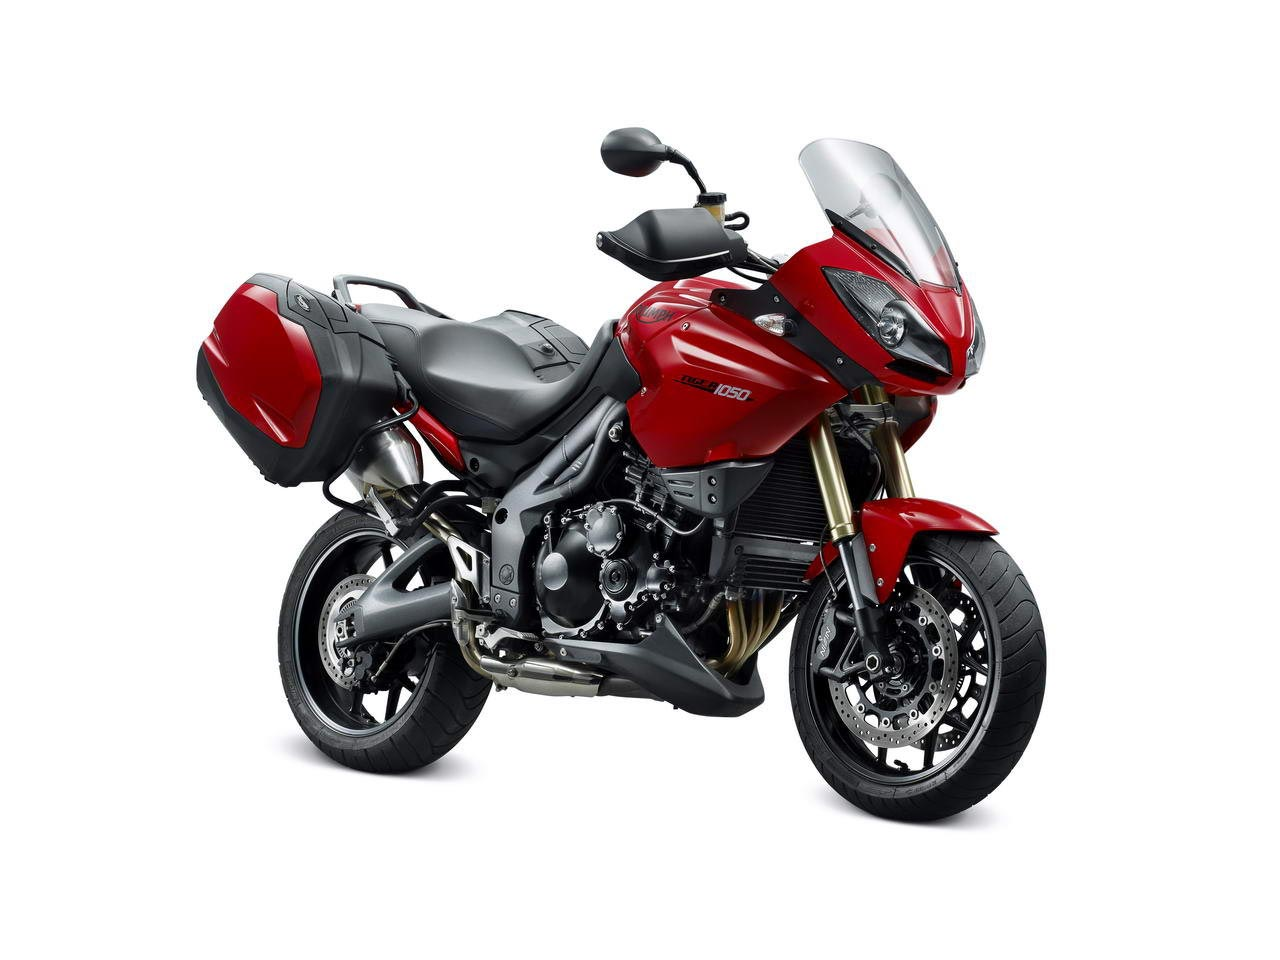 TRIUMPH TIGER 1050 SE red